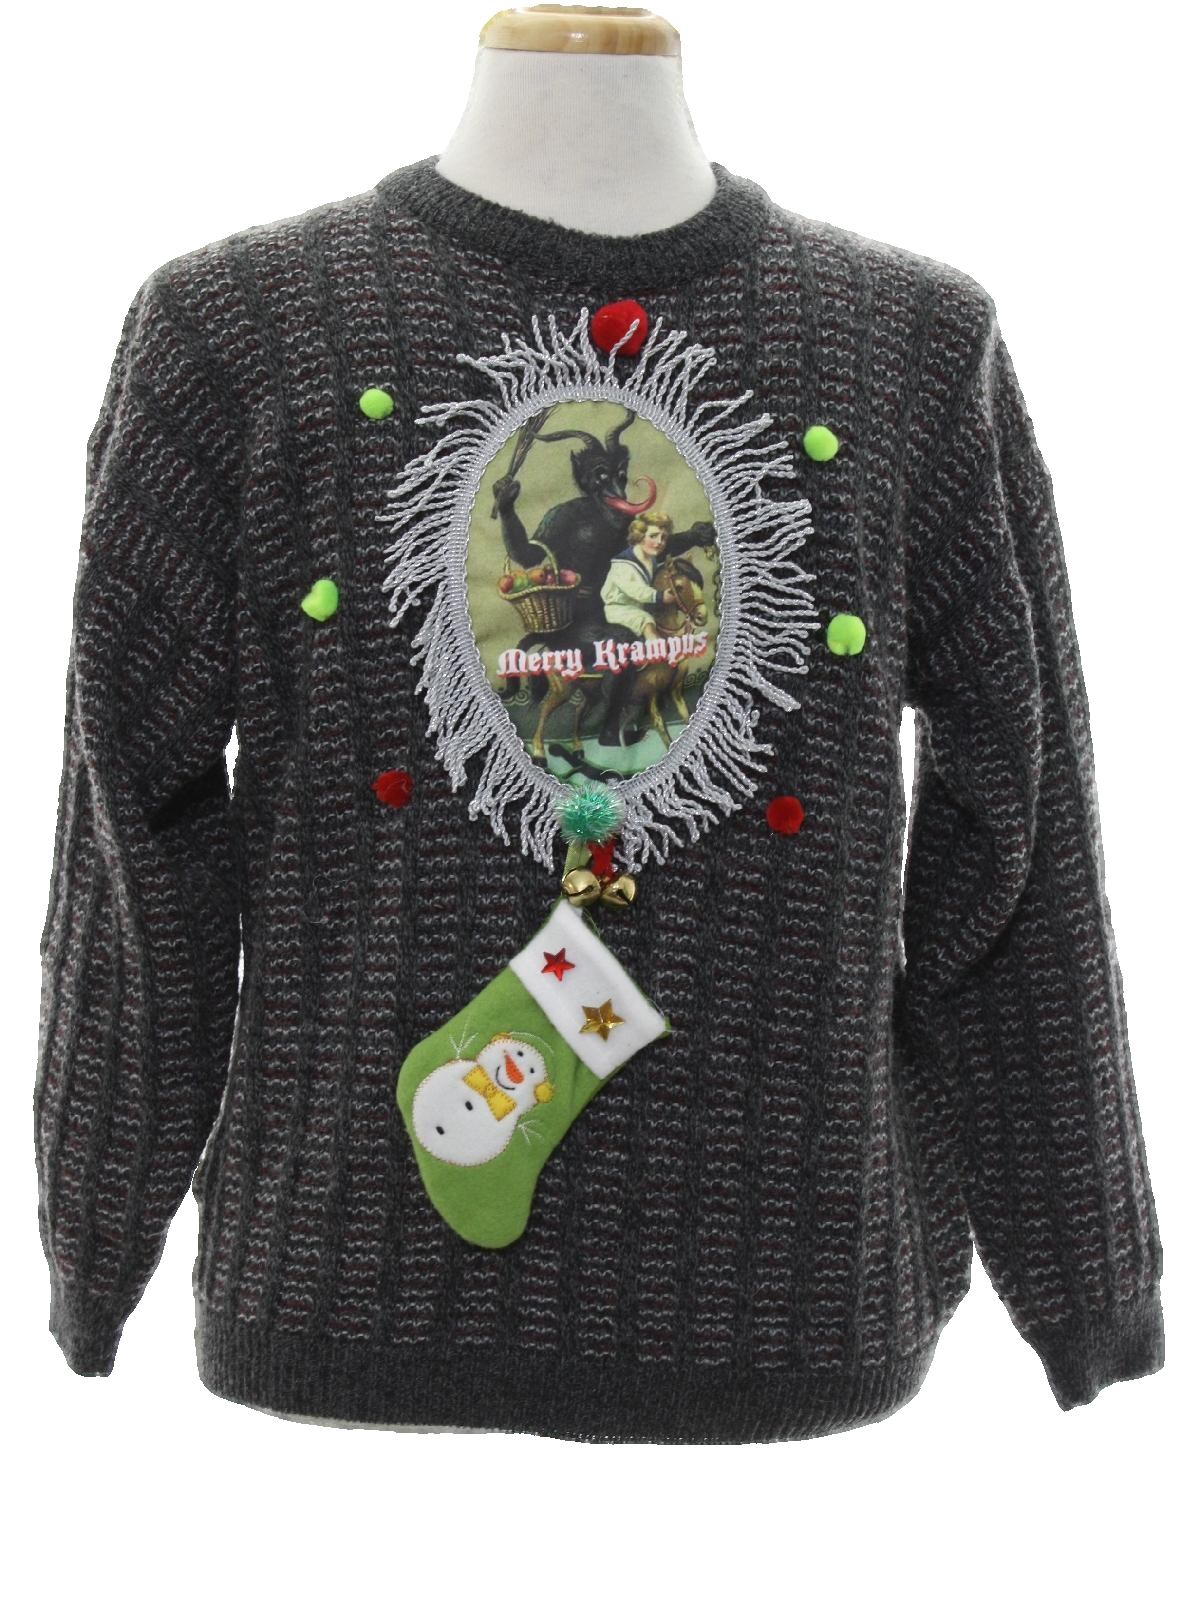 4461201acd Mens Krampus Ugly Christmas Sweater  -Cortina italia- Mens grey and red  wool acrylic blend pullover longsleeve Krampus Ugly Christmas Sweater with  ribbed ...